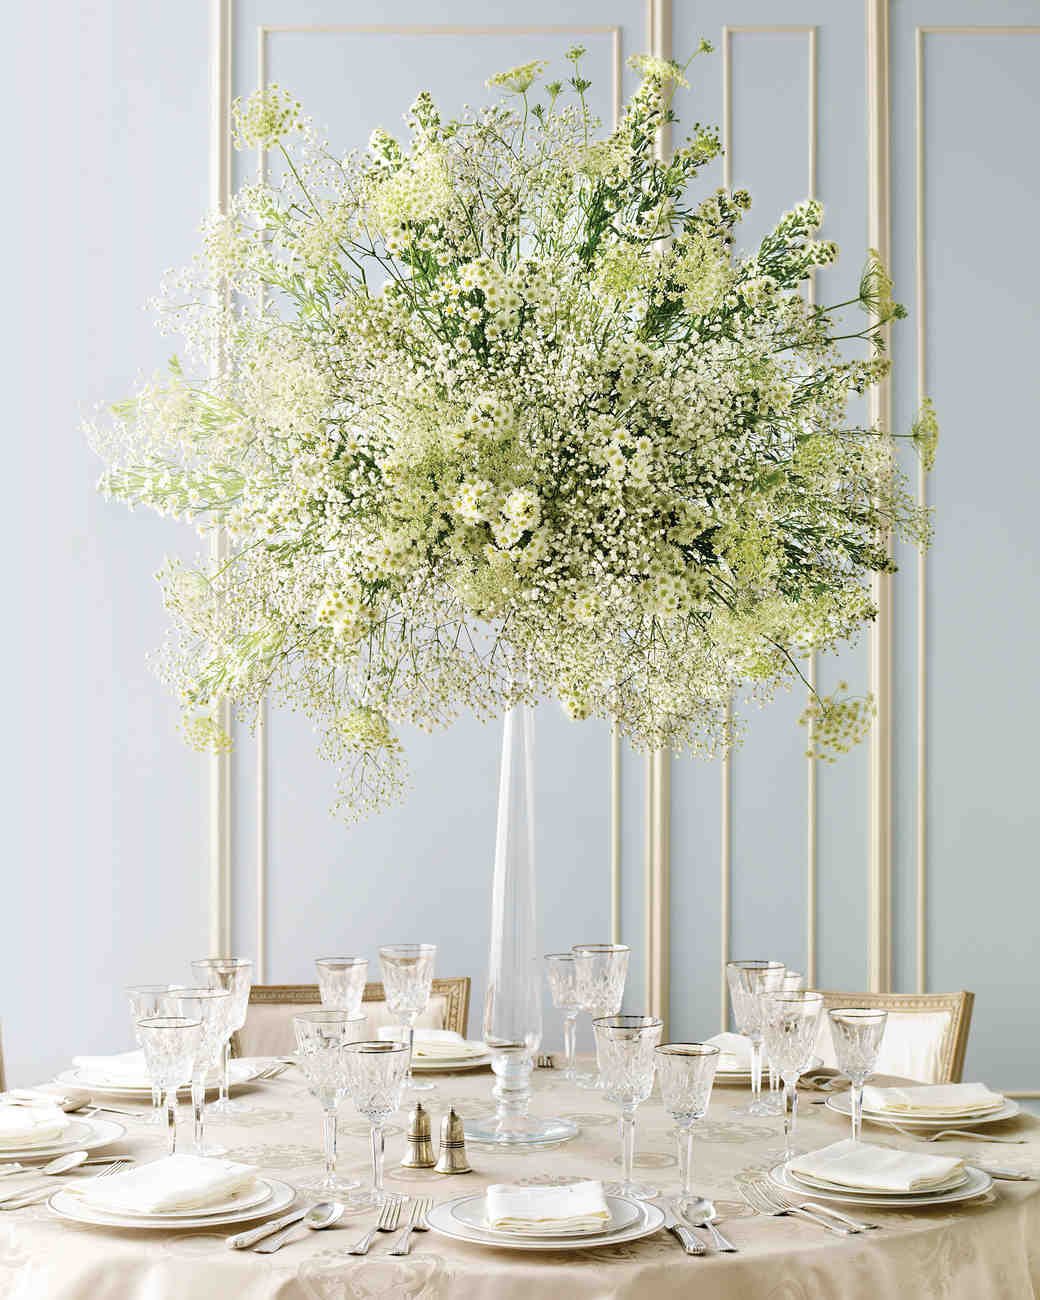 Beautiful June Wedding Flowers Arrangements: Elegant And Inexpensive Wedding Flower Ideas